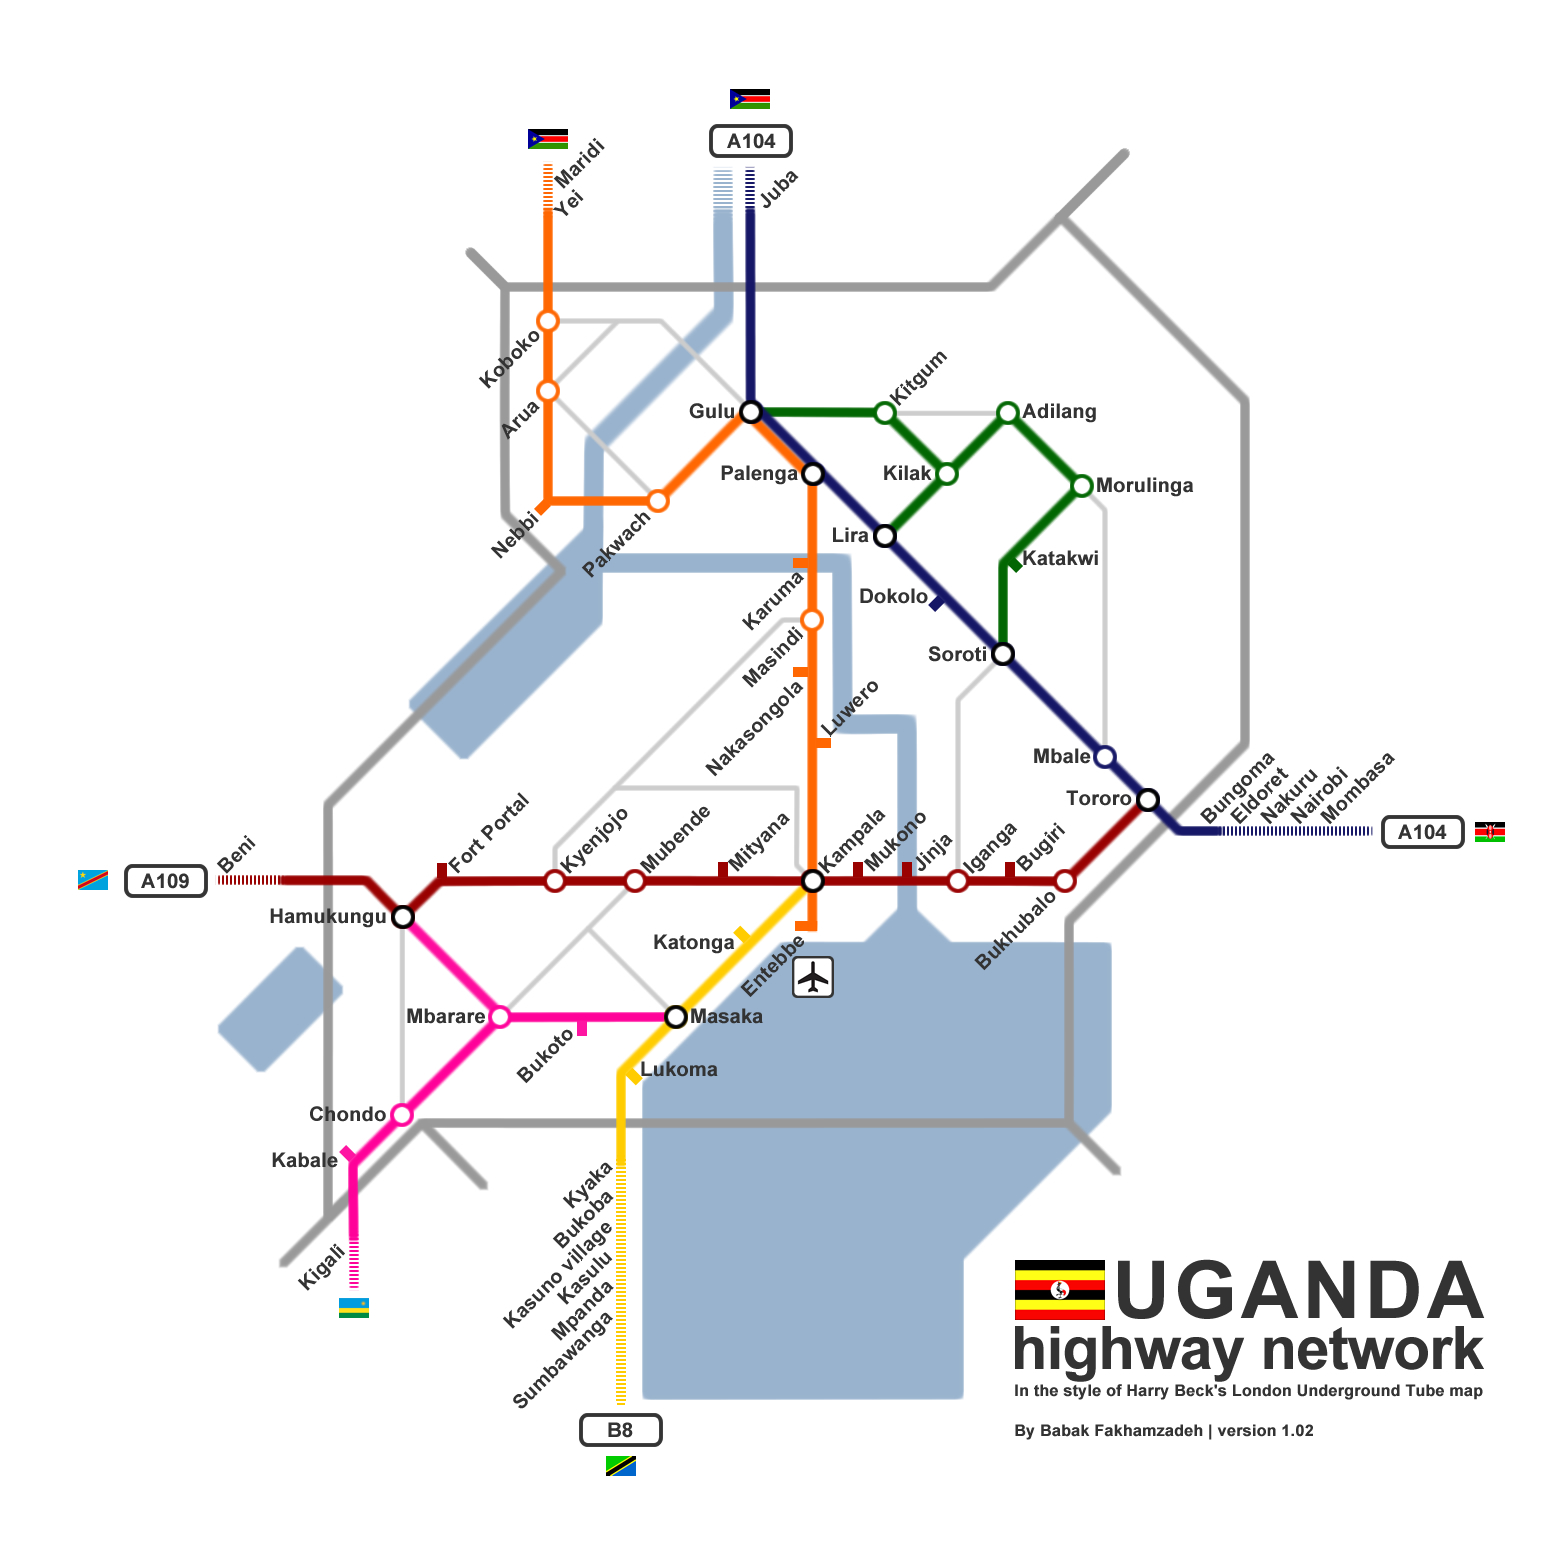 Uganda highway network